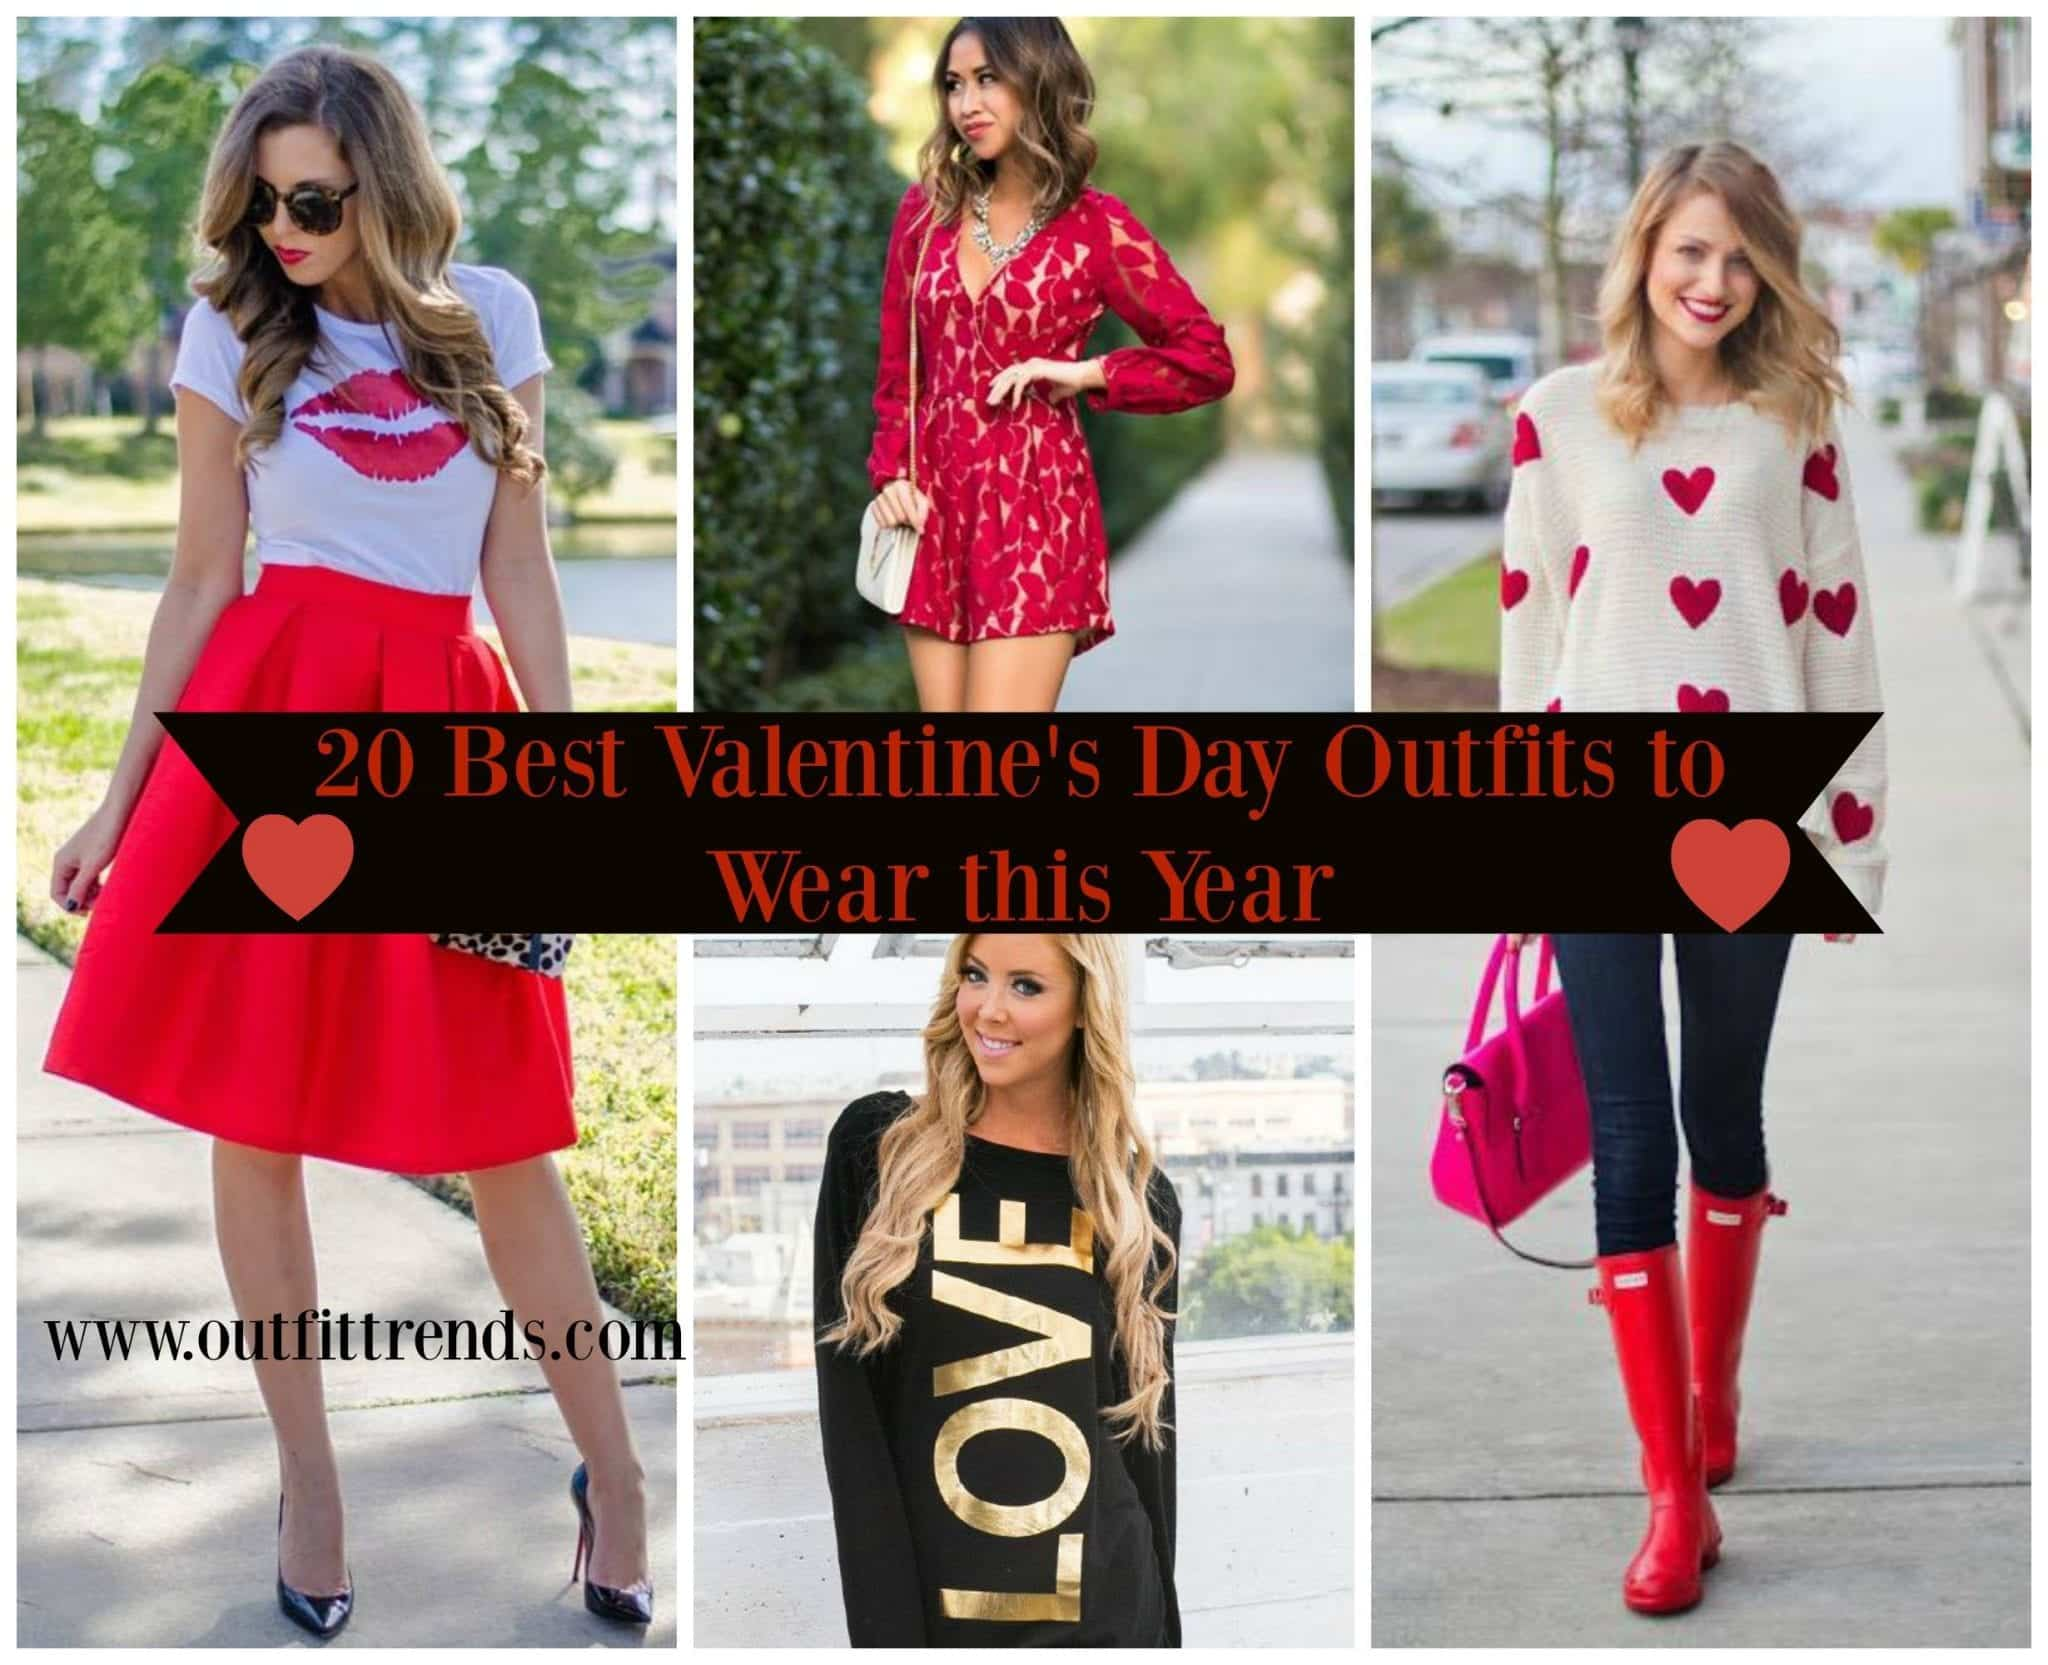 valentines-day-outfits-for-girls-2017 Top 20 Amazing Outfits Ideas For Valentine's Day 2018